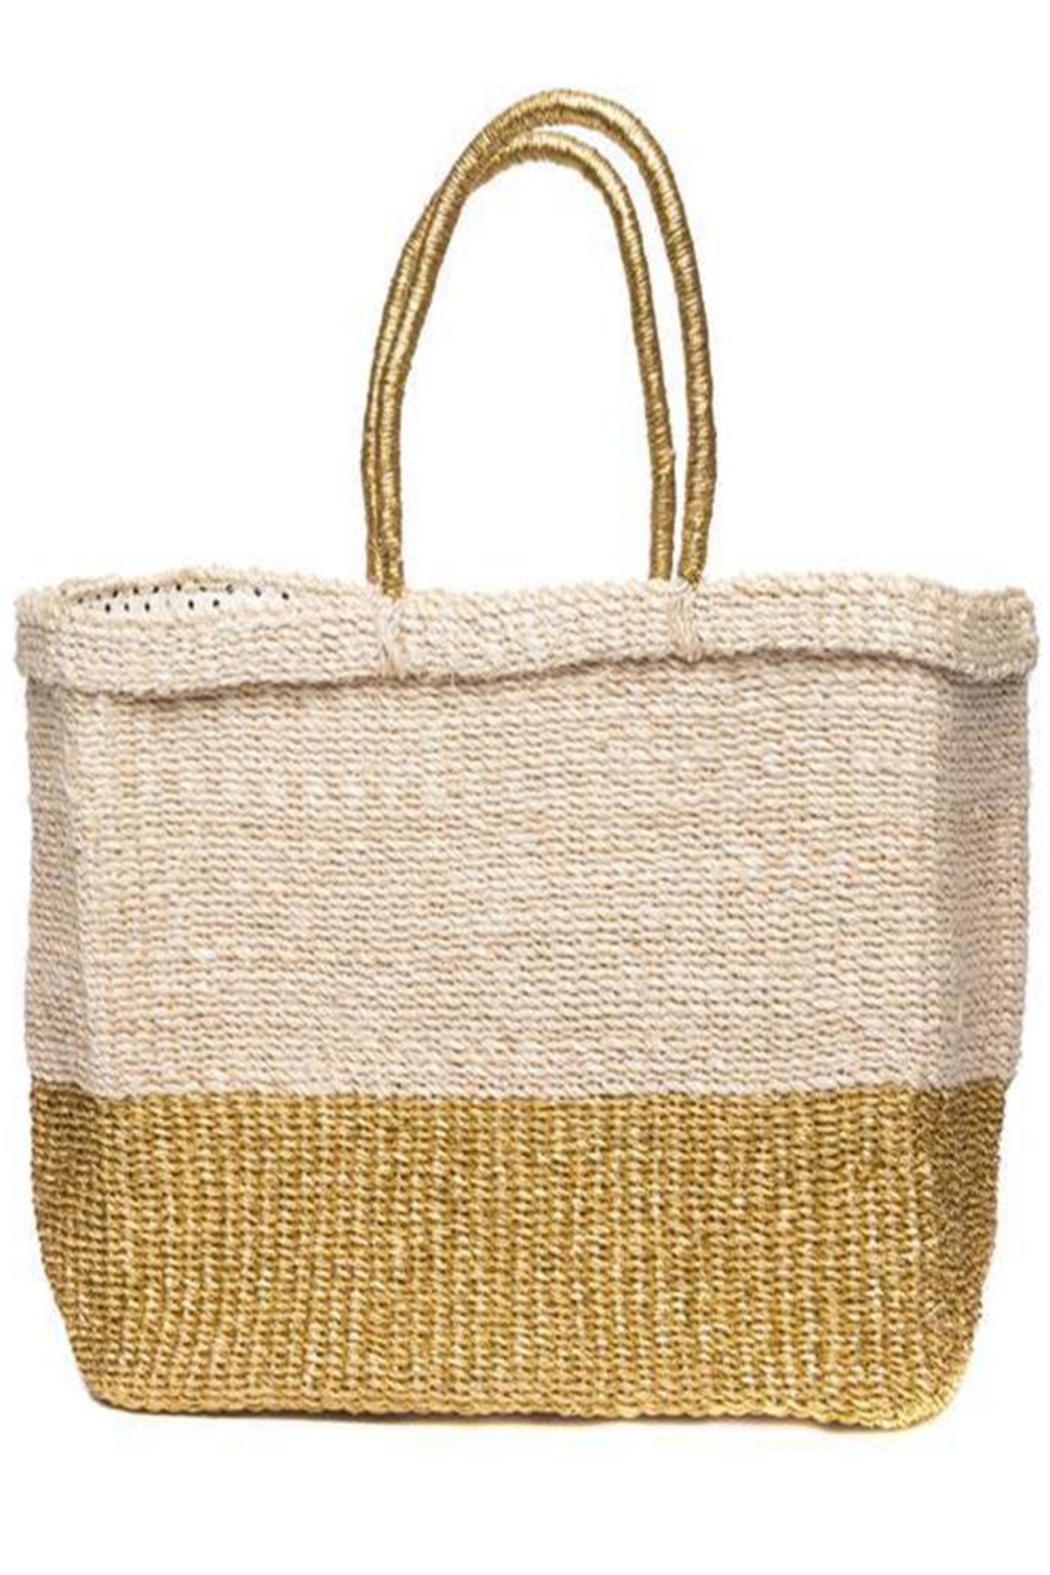 Femme Boutique Boston  Golden Reflections Tote - Front Full Image